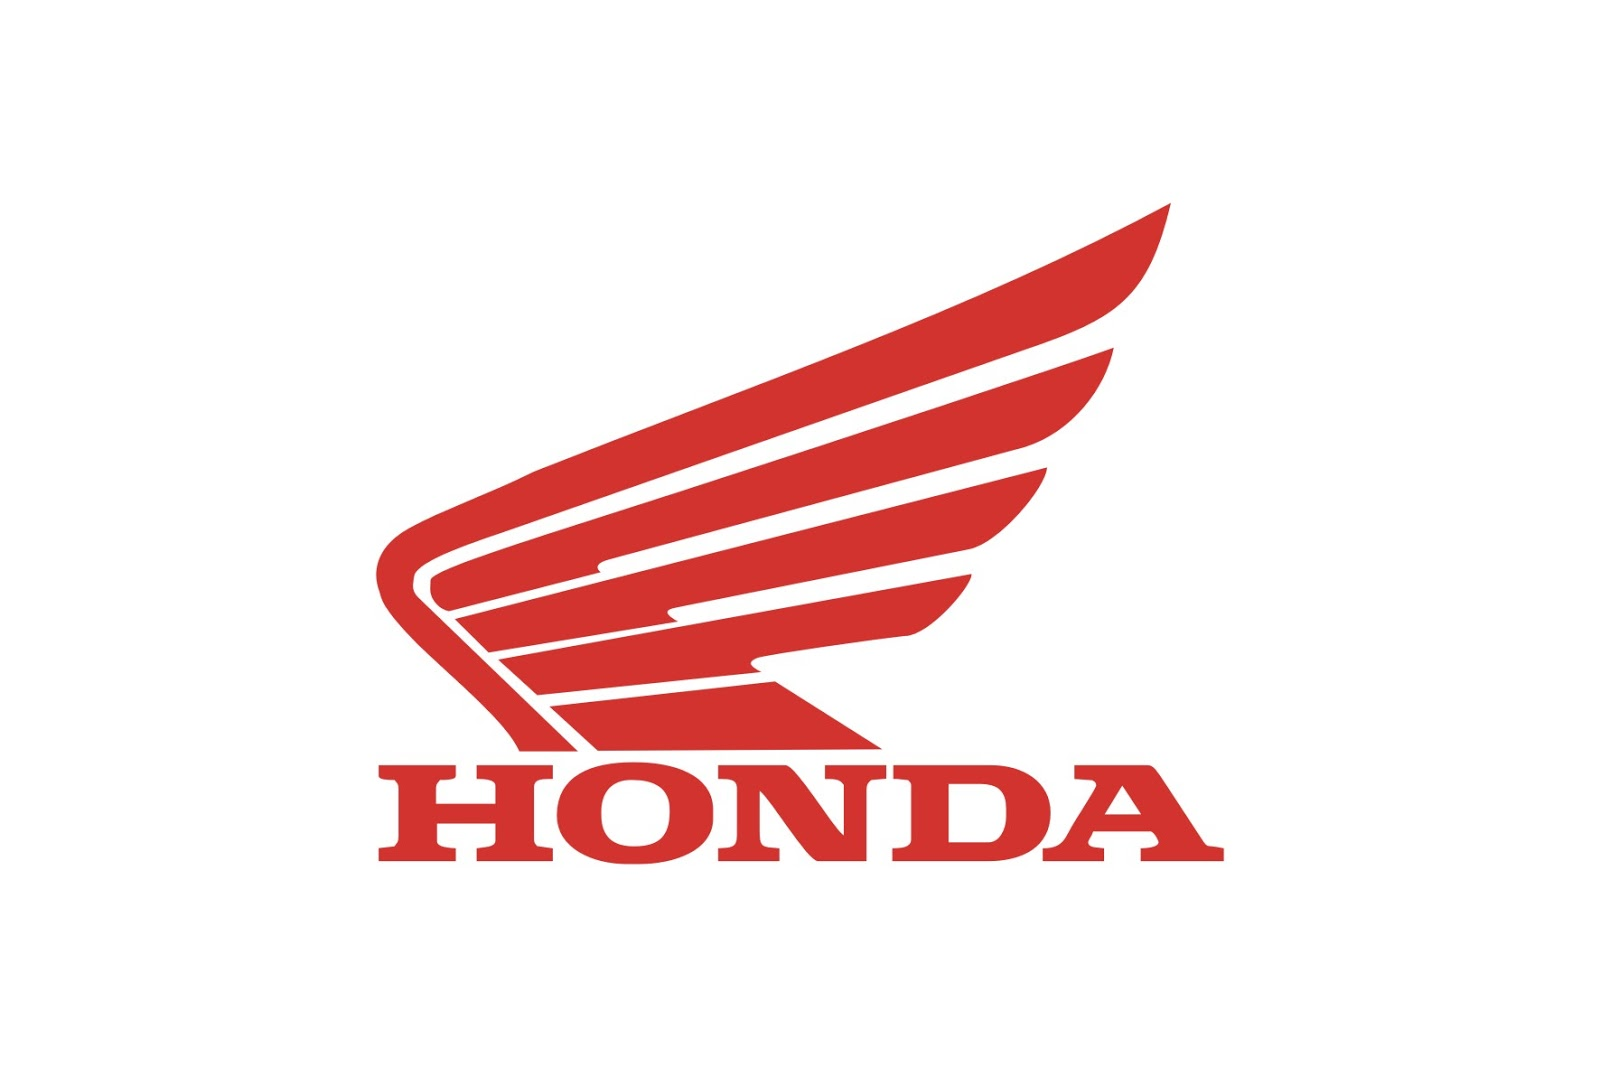 honda motorcycle logo. Black Bedroom Furniture Sets. Home Design Ideas